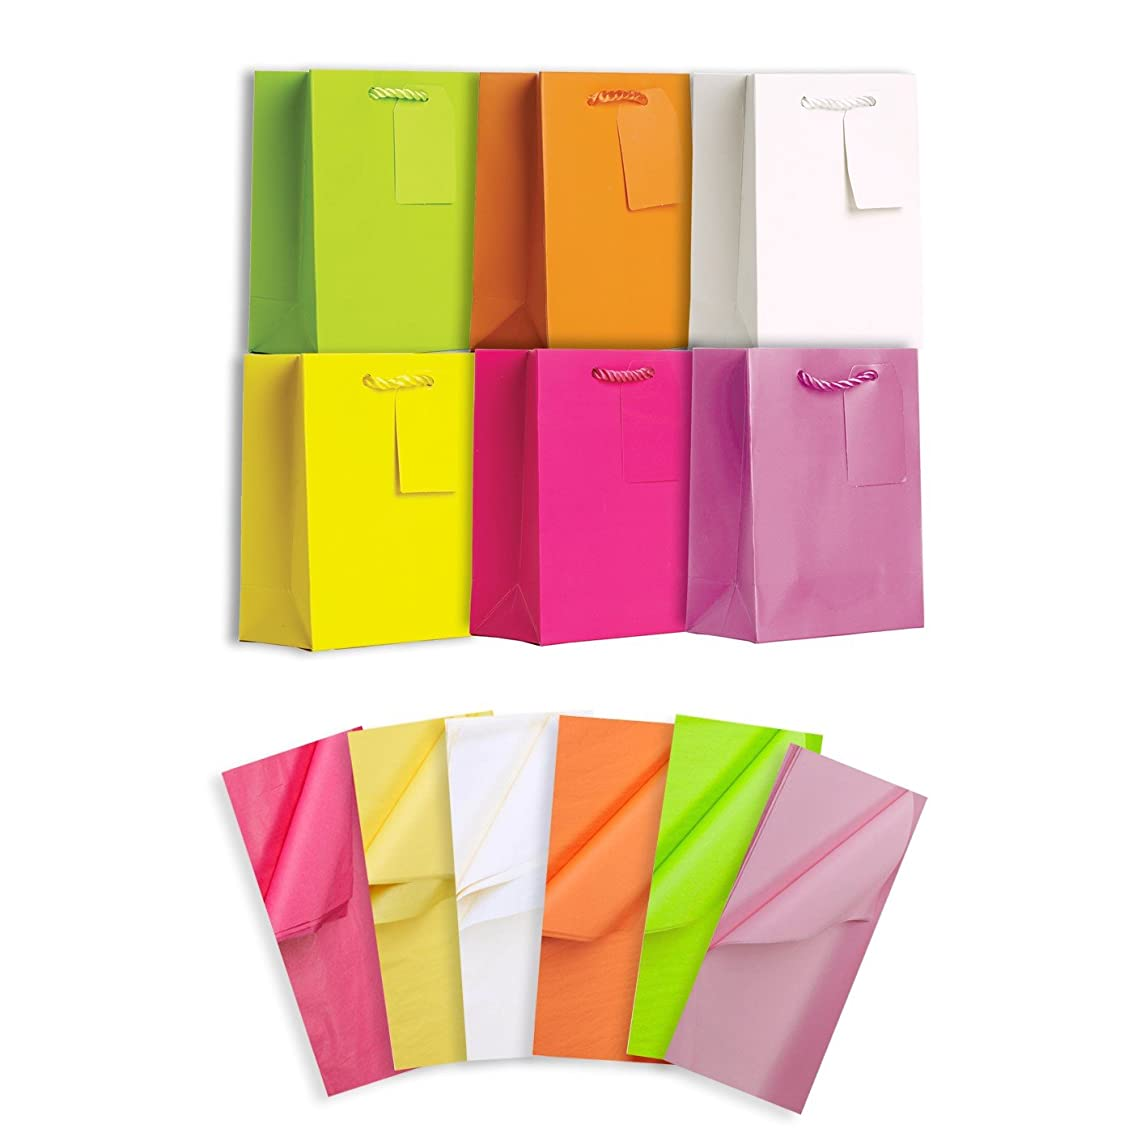 Jillson Roberts 6-Count Small All-Occasion Solid Color Gift Bags with Tissue Available in 4 Different Assortments, Pretty Pastels